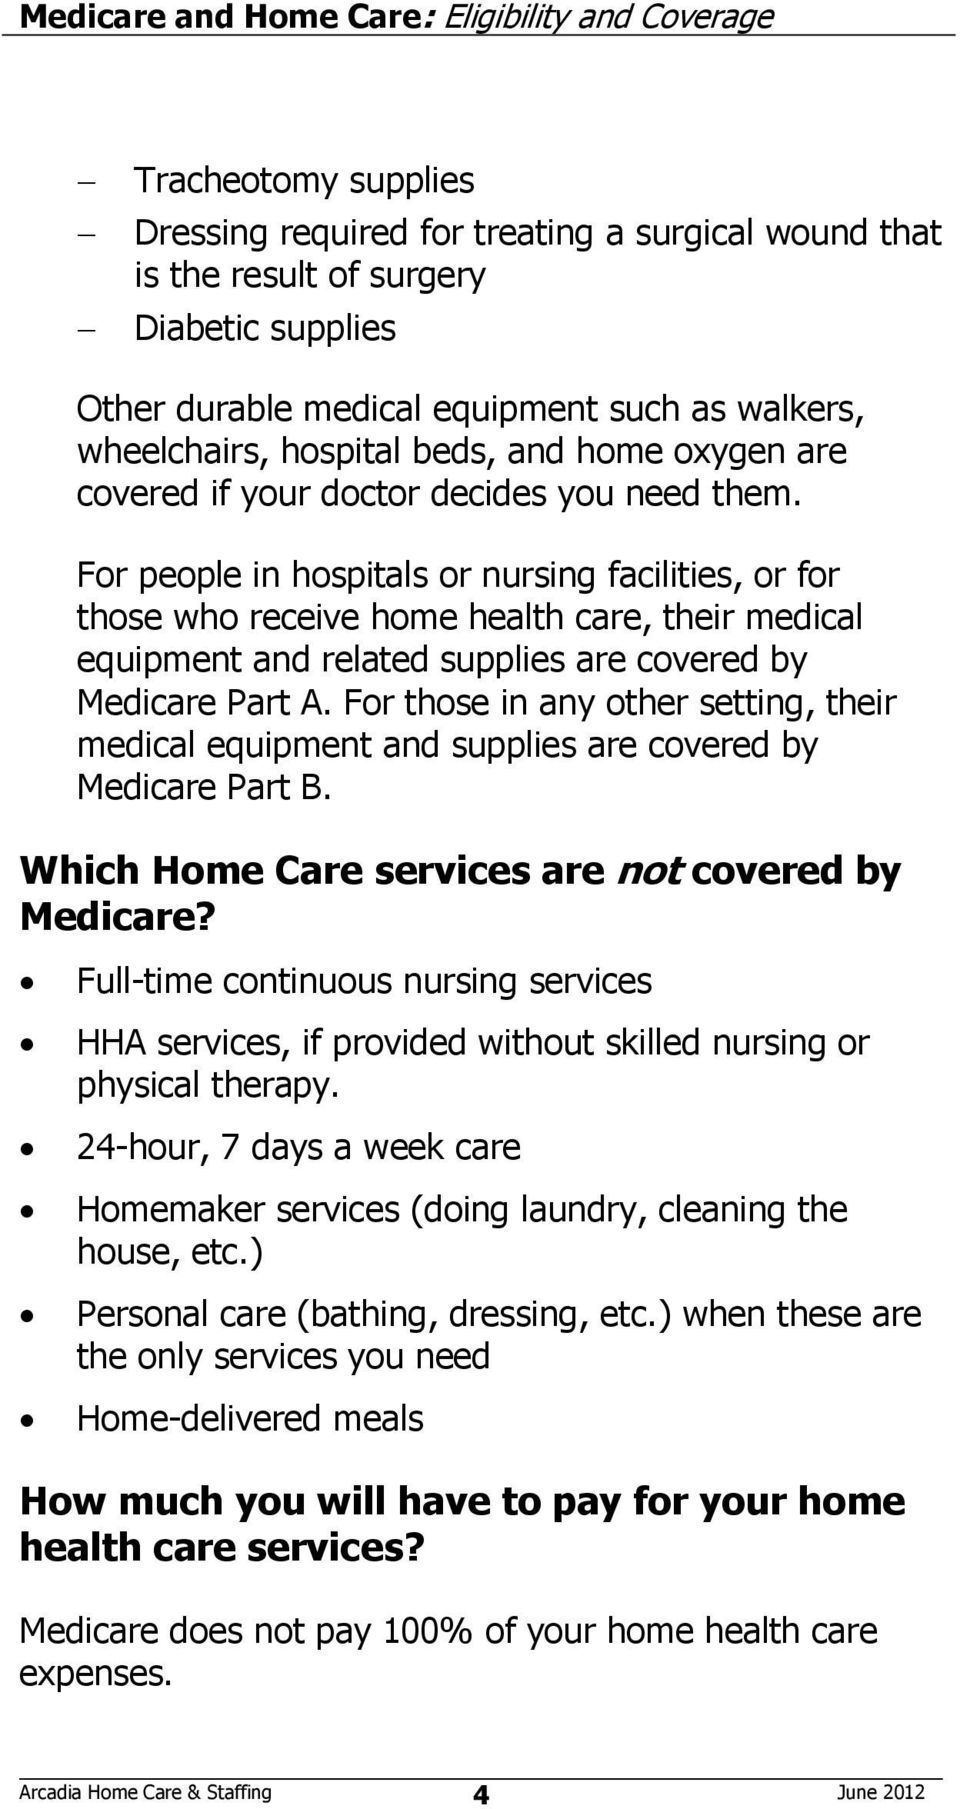 For people in hospitals or nursing facilities, or for those who receive home health care, their medical equipment and related supplies are covered by Medicare Part A.